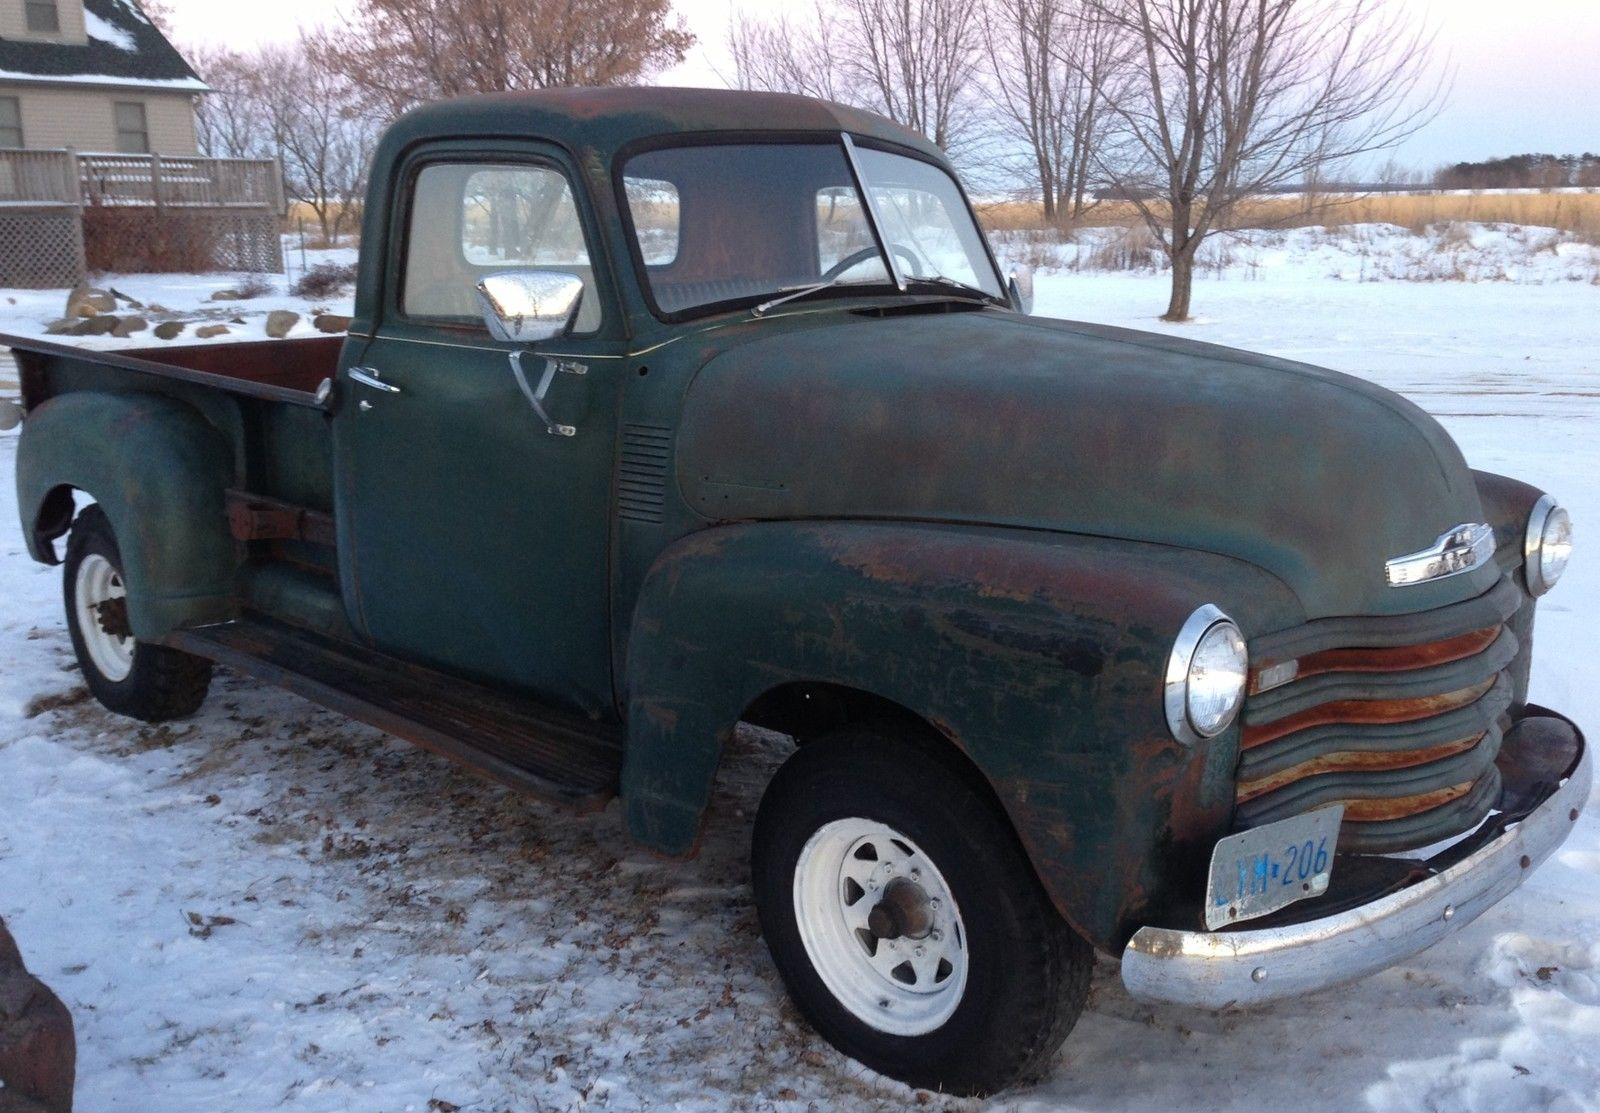 barn find 1950 chevrolet 3600 pickup truck patina hot rat rod gmc 1947 1953. Black Bedroom Furniture Sets. Home Design Ideas